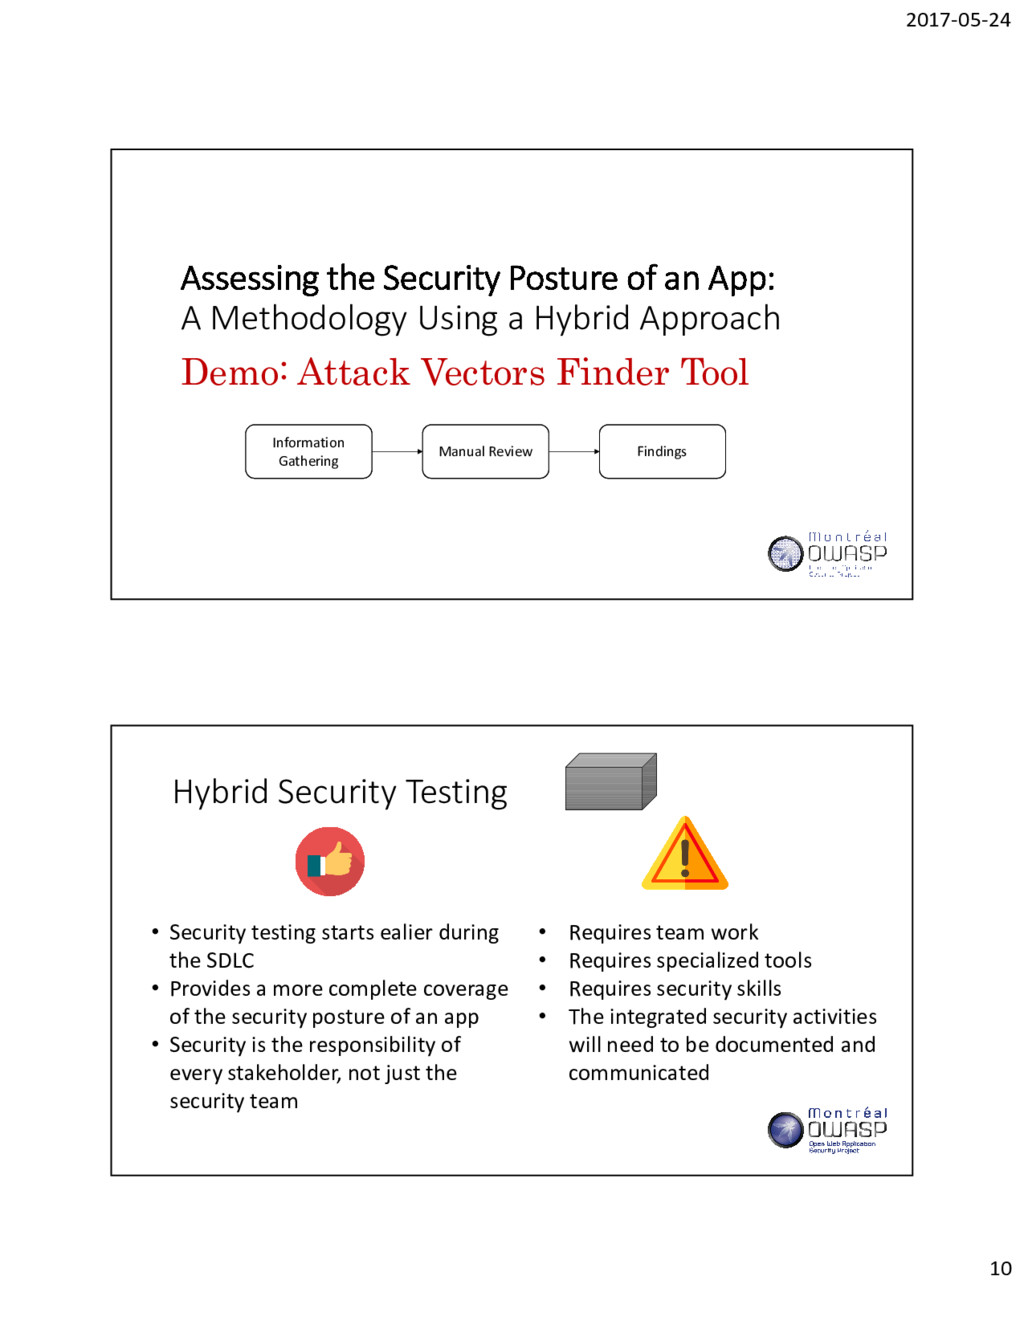 2017-05-24 10 Assessing the Security Posture of...